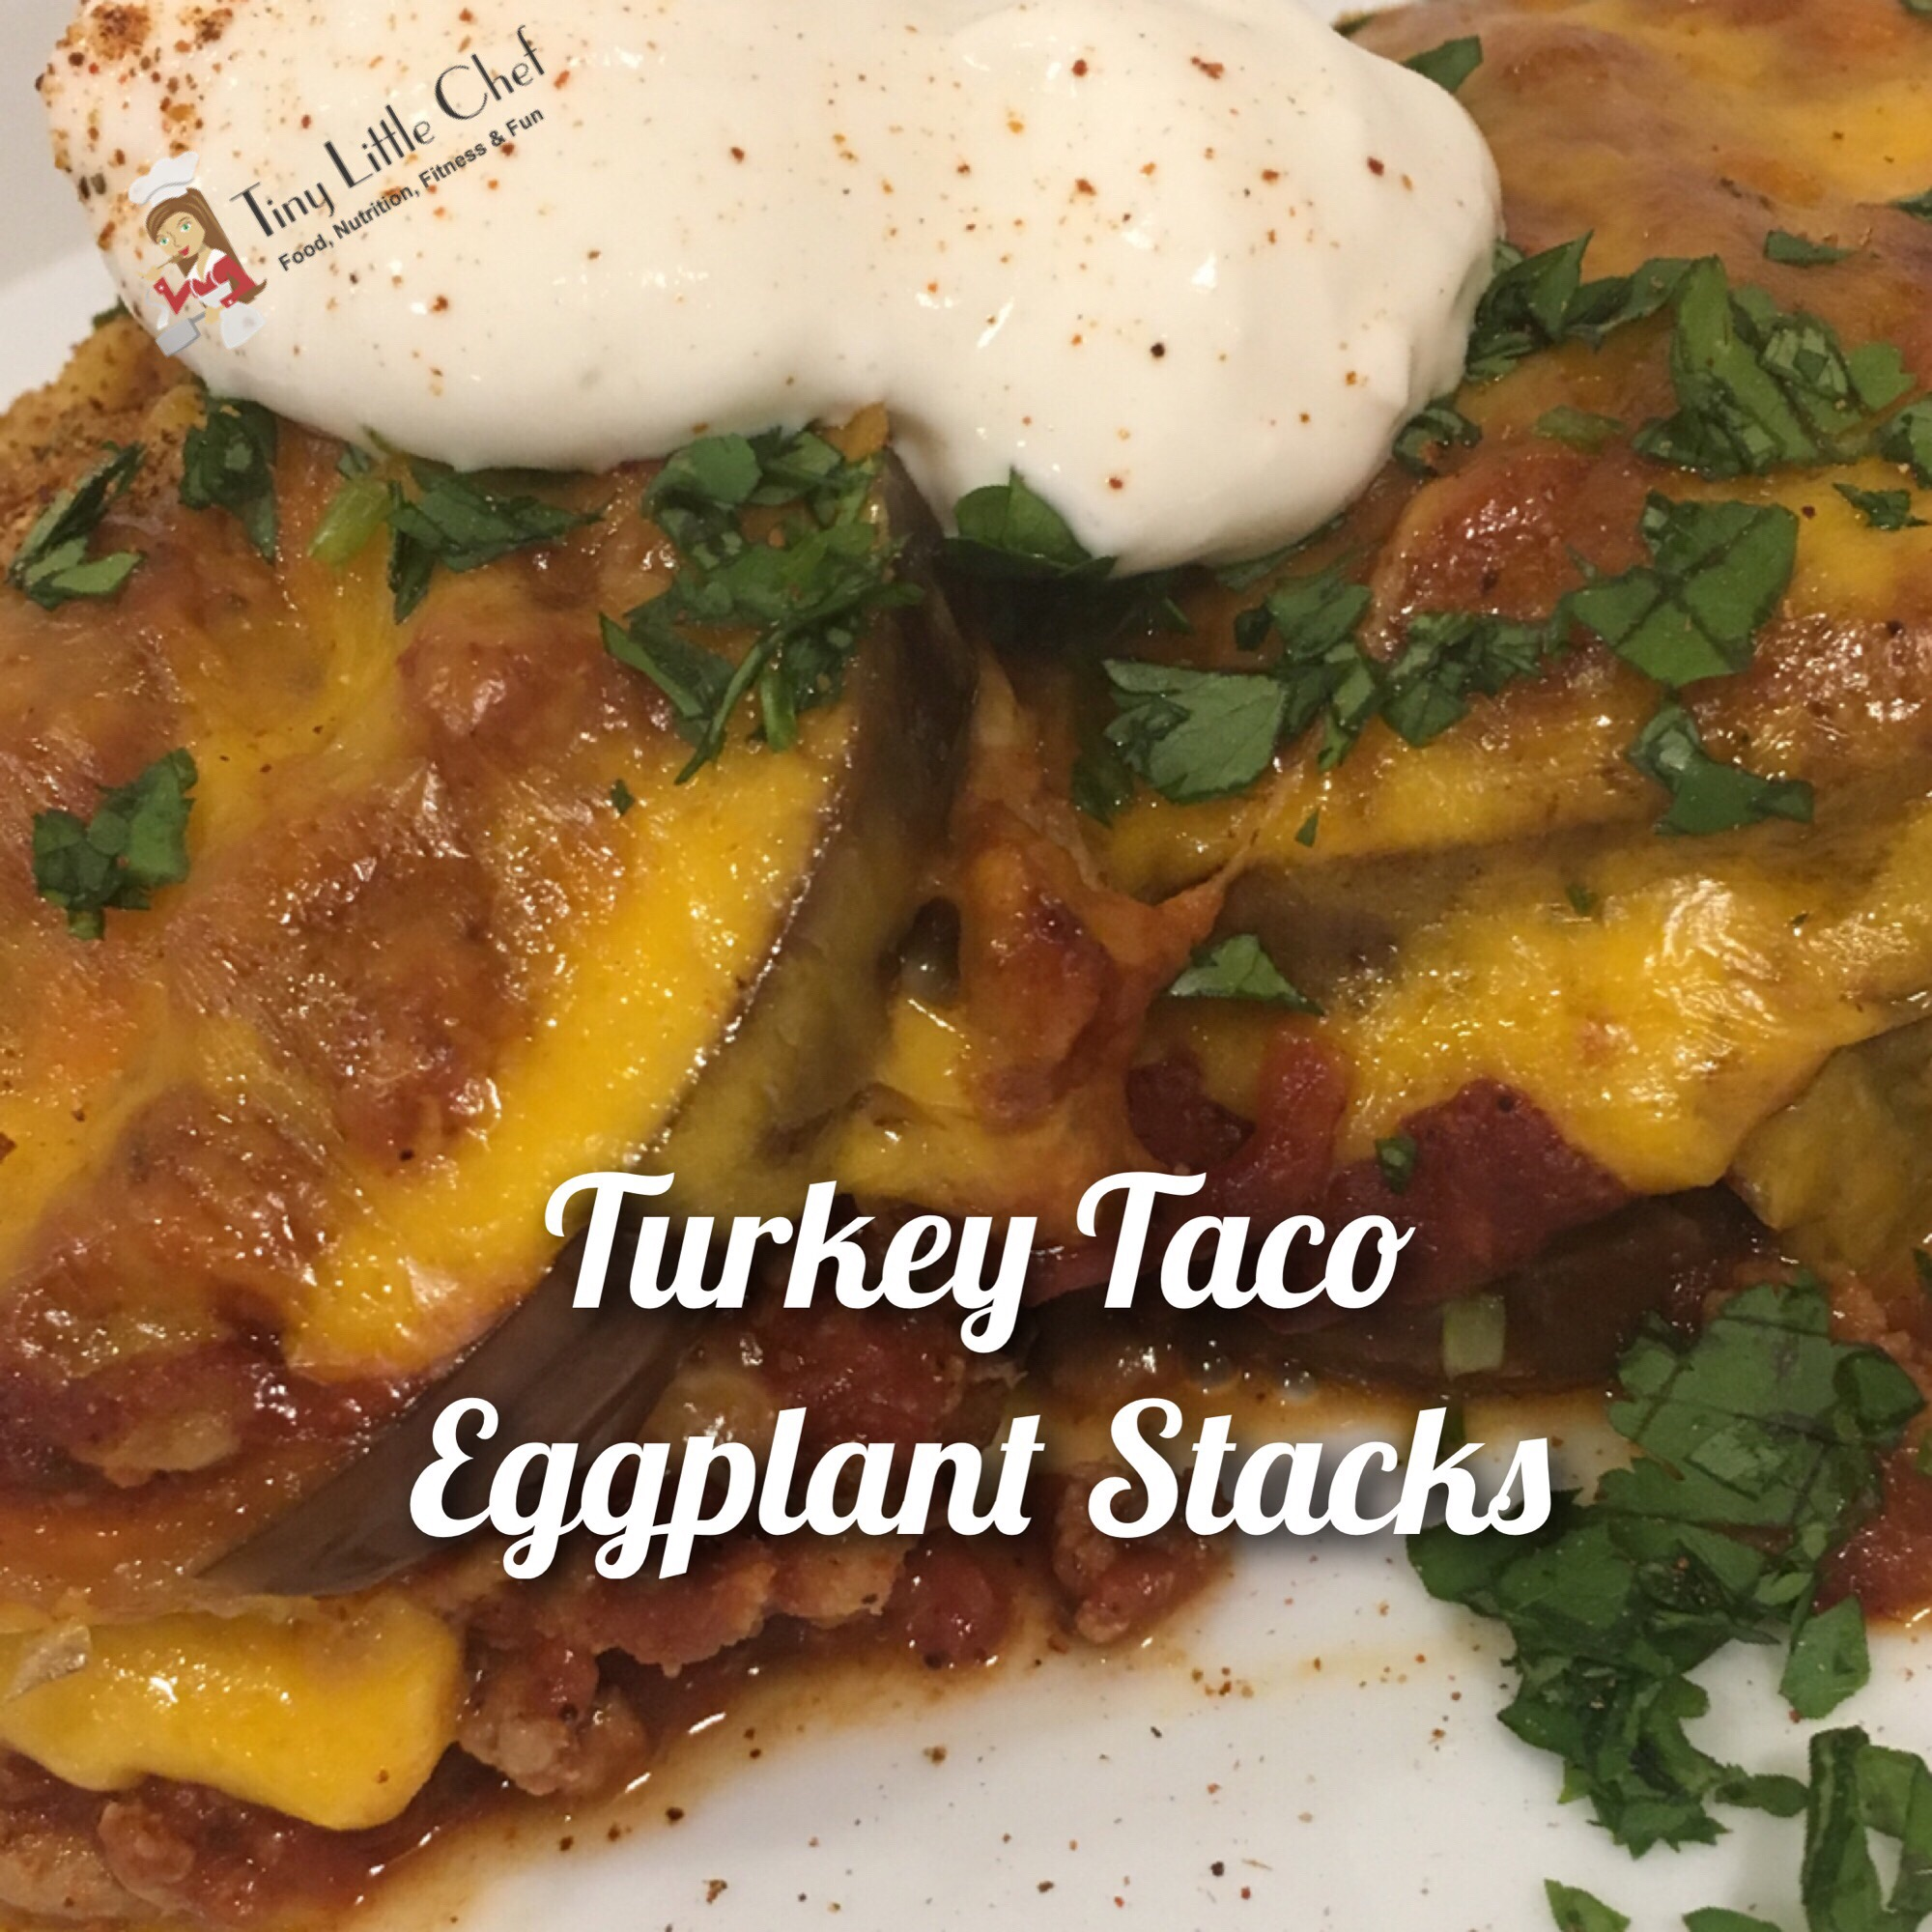 Tiny Little Chef Turkey Taco Eggplant Stacks